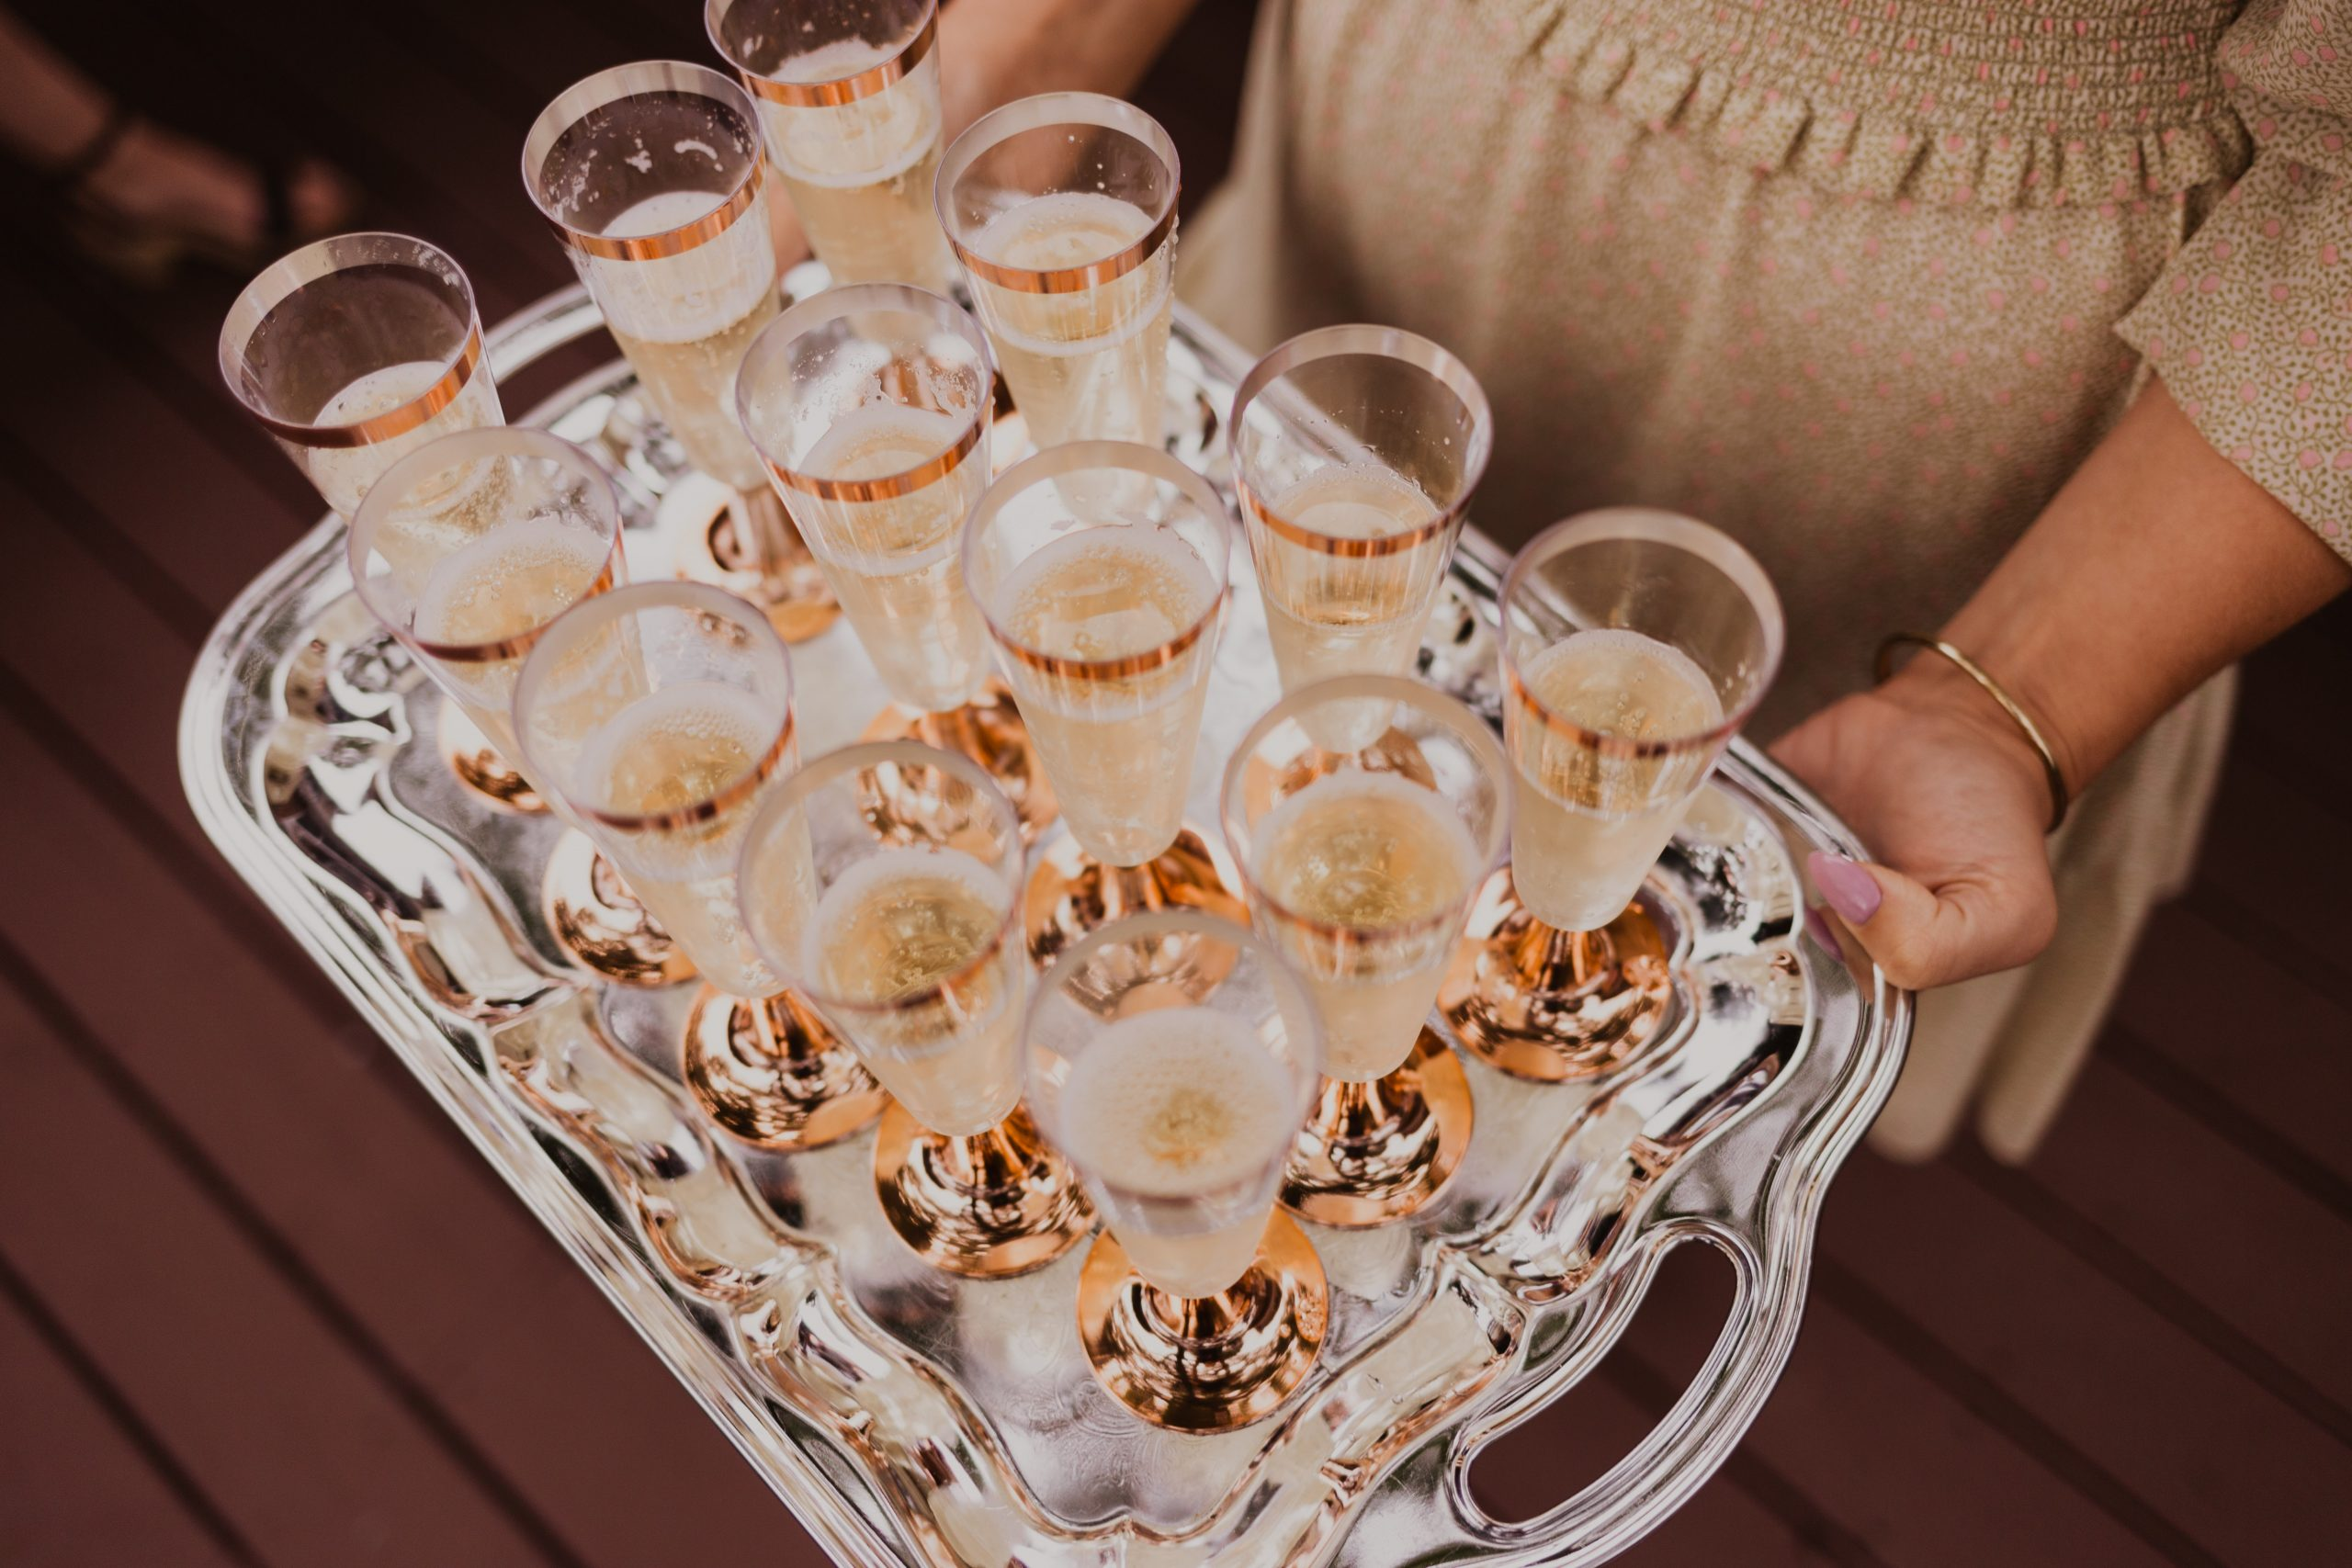 Start the evening with a glass of champagne